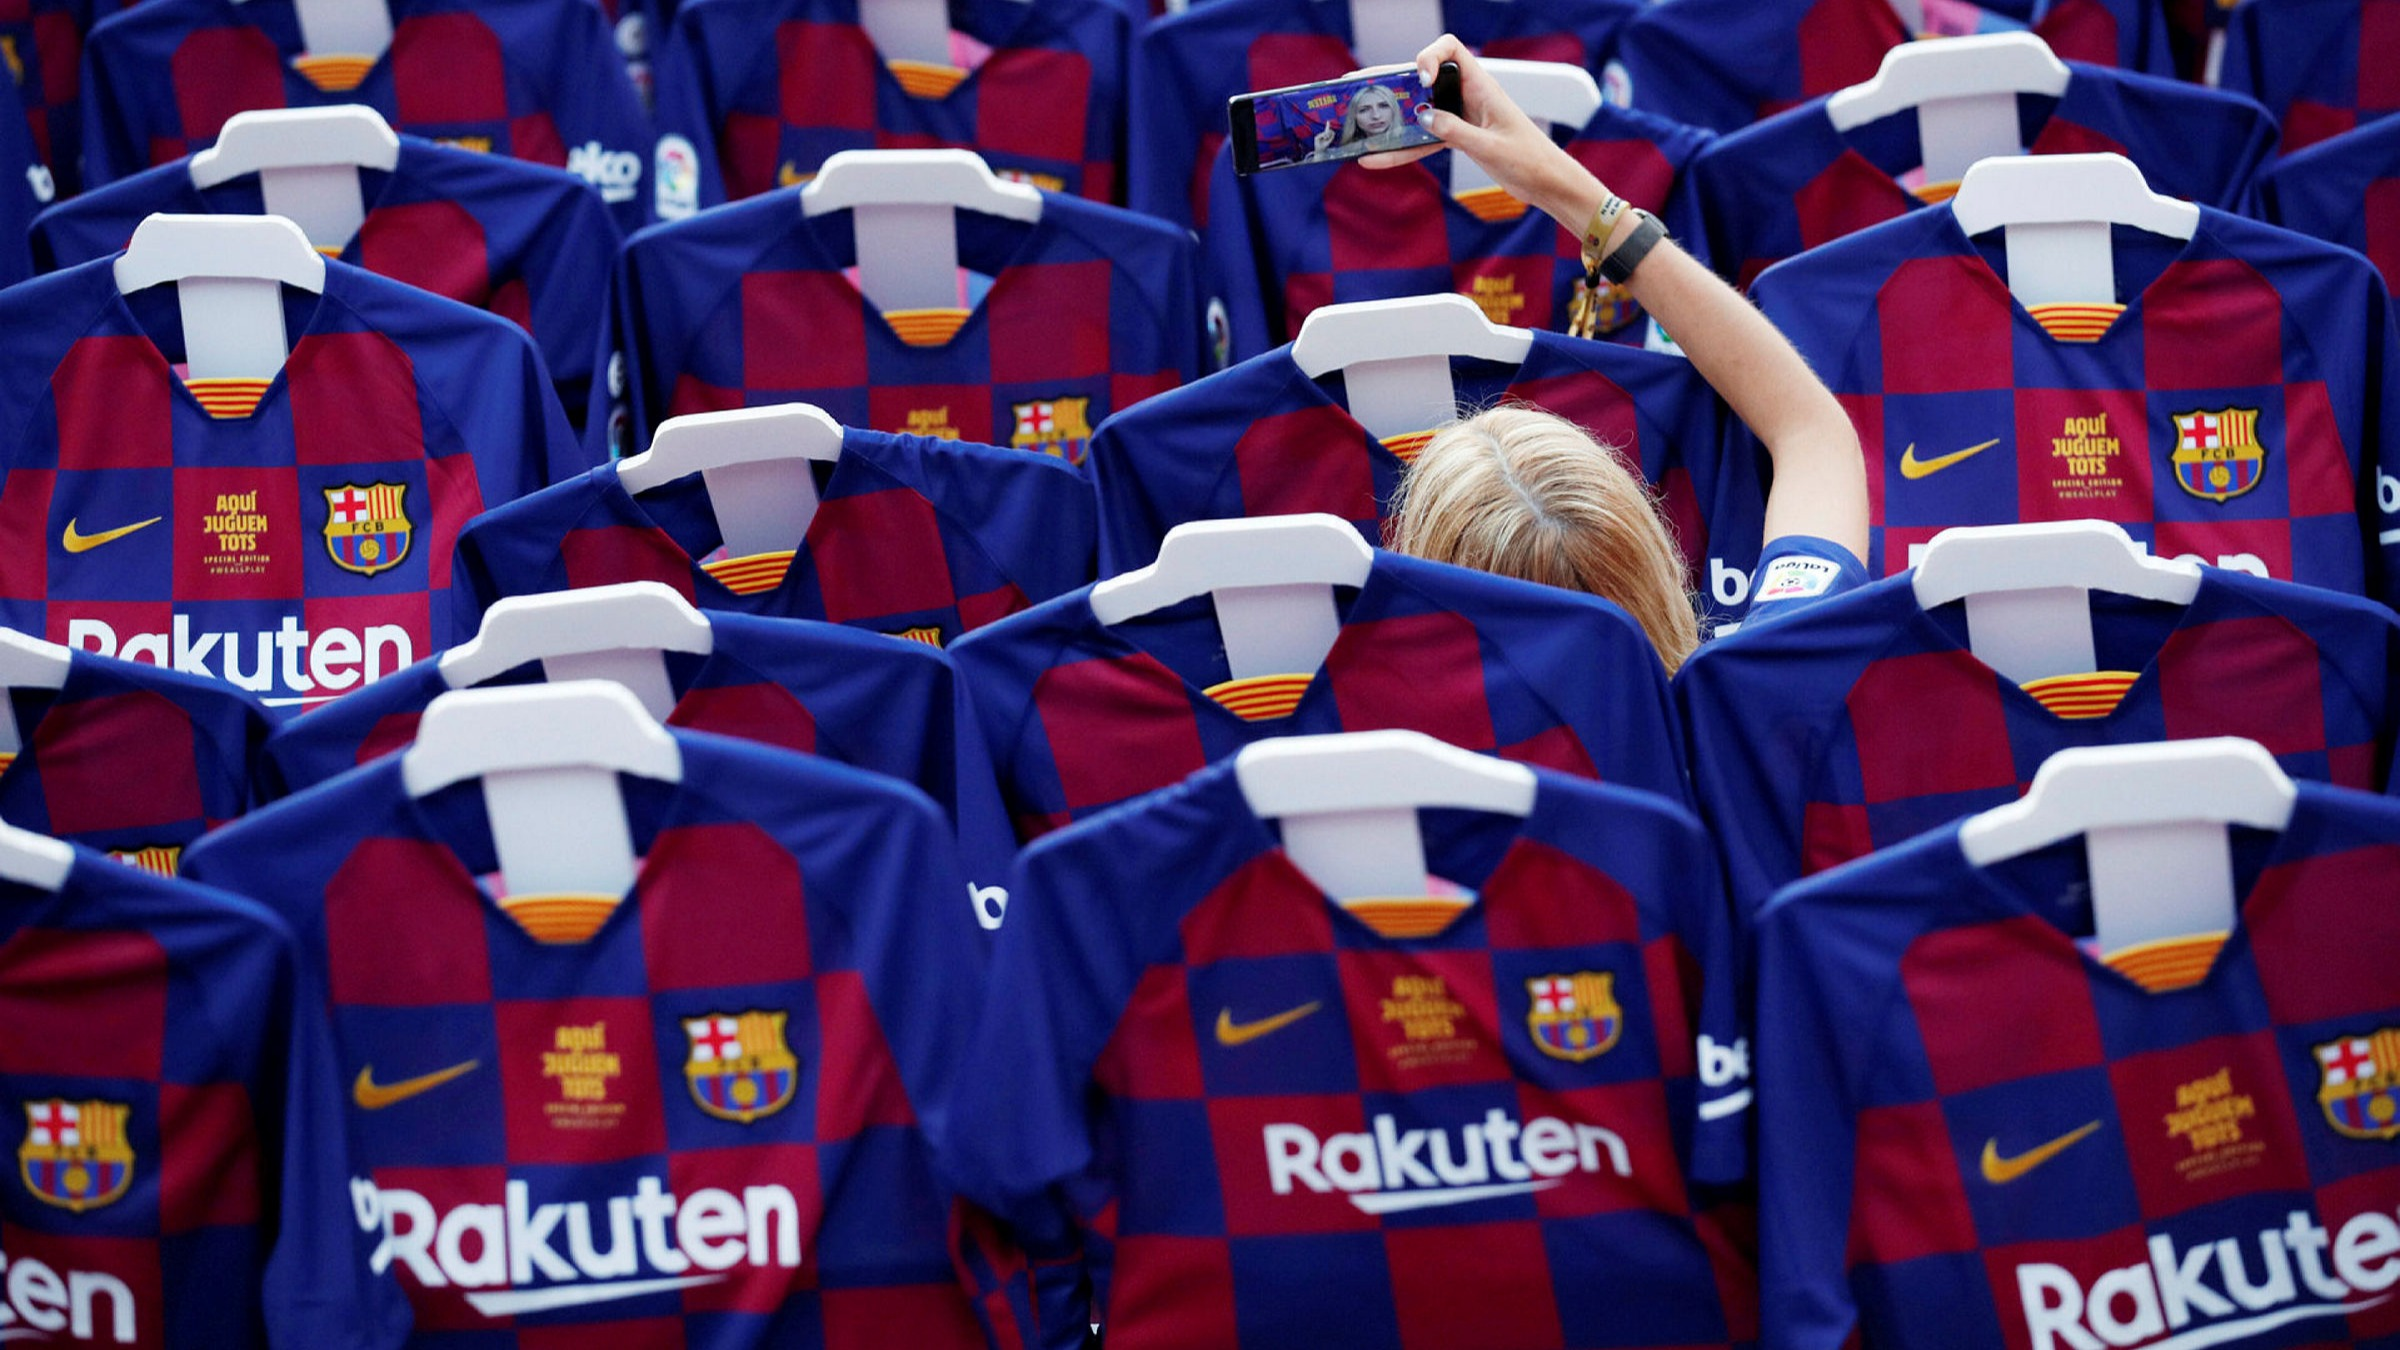 What Barcelona S Bleeding Shirts Tell Us About The Pandemic Financial Times